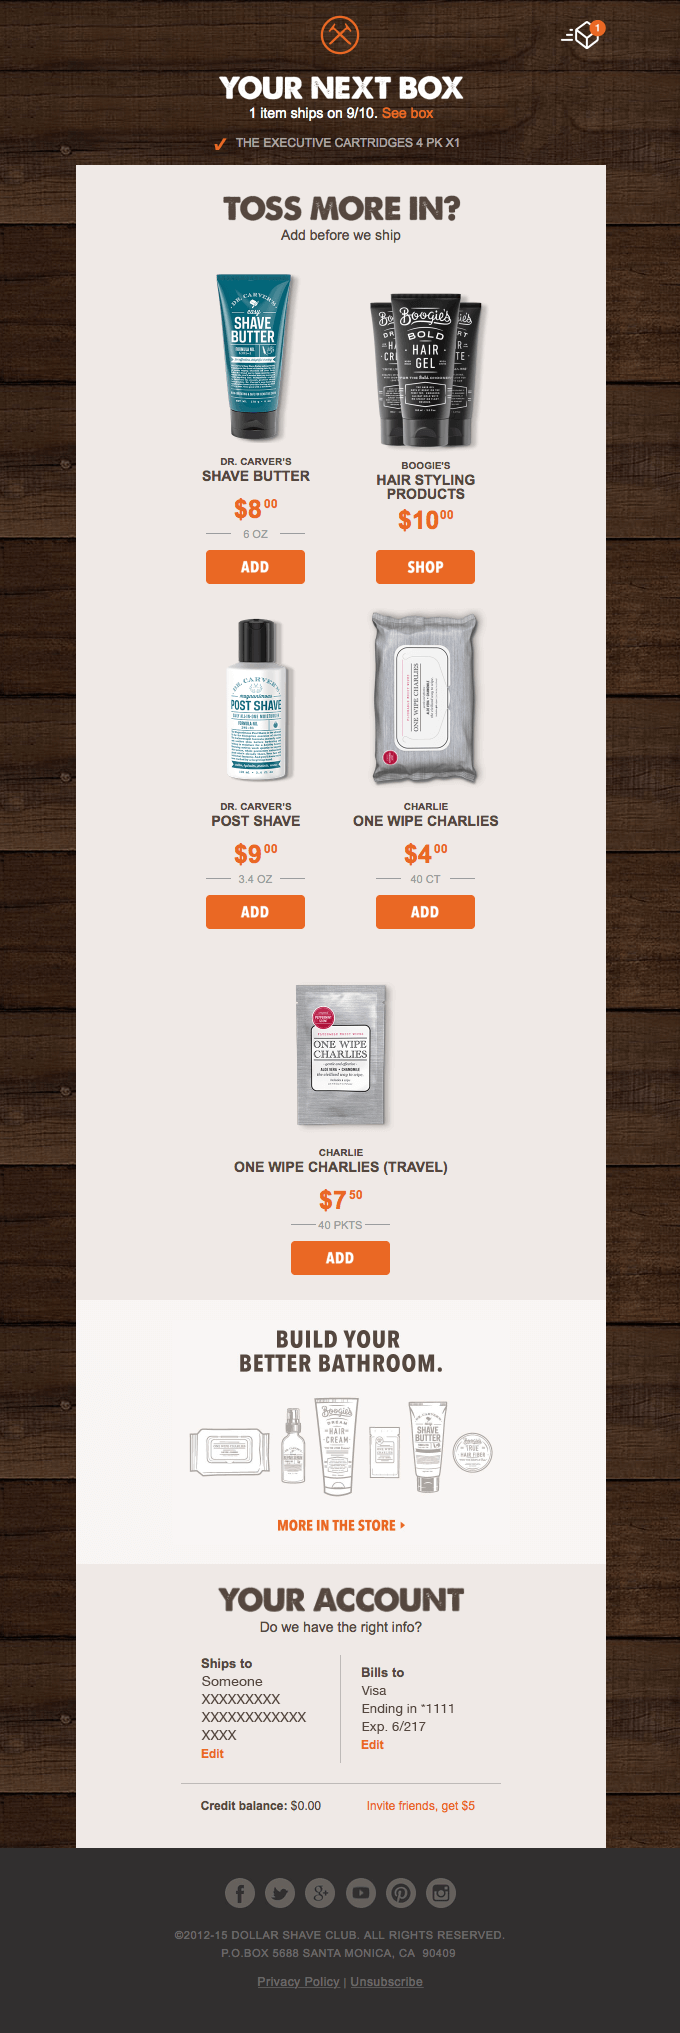 Dollar Shave Club adding additional product recommendations to an automated subscription confirmation.